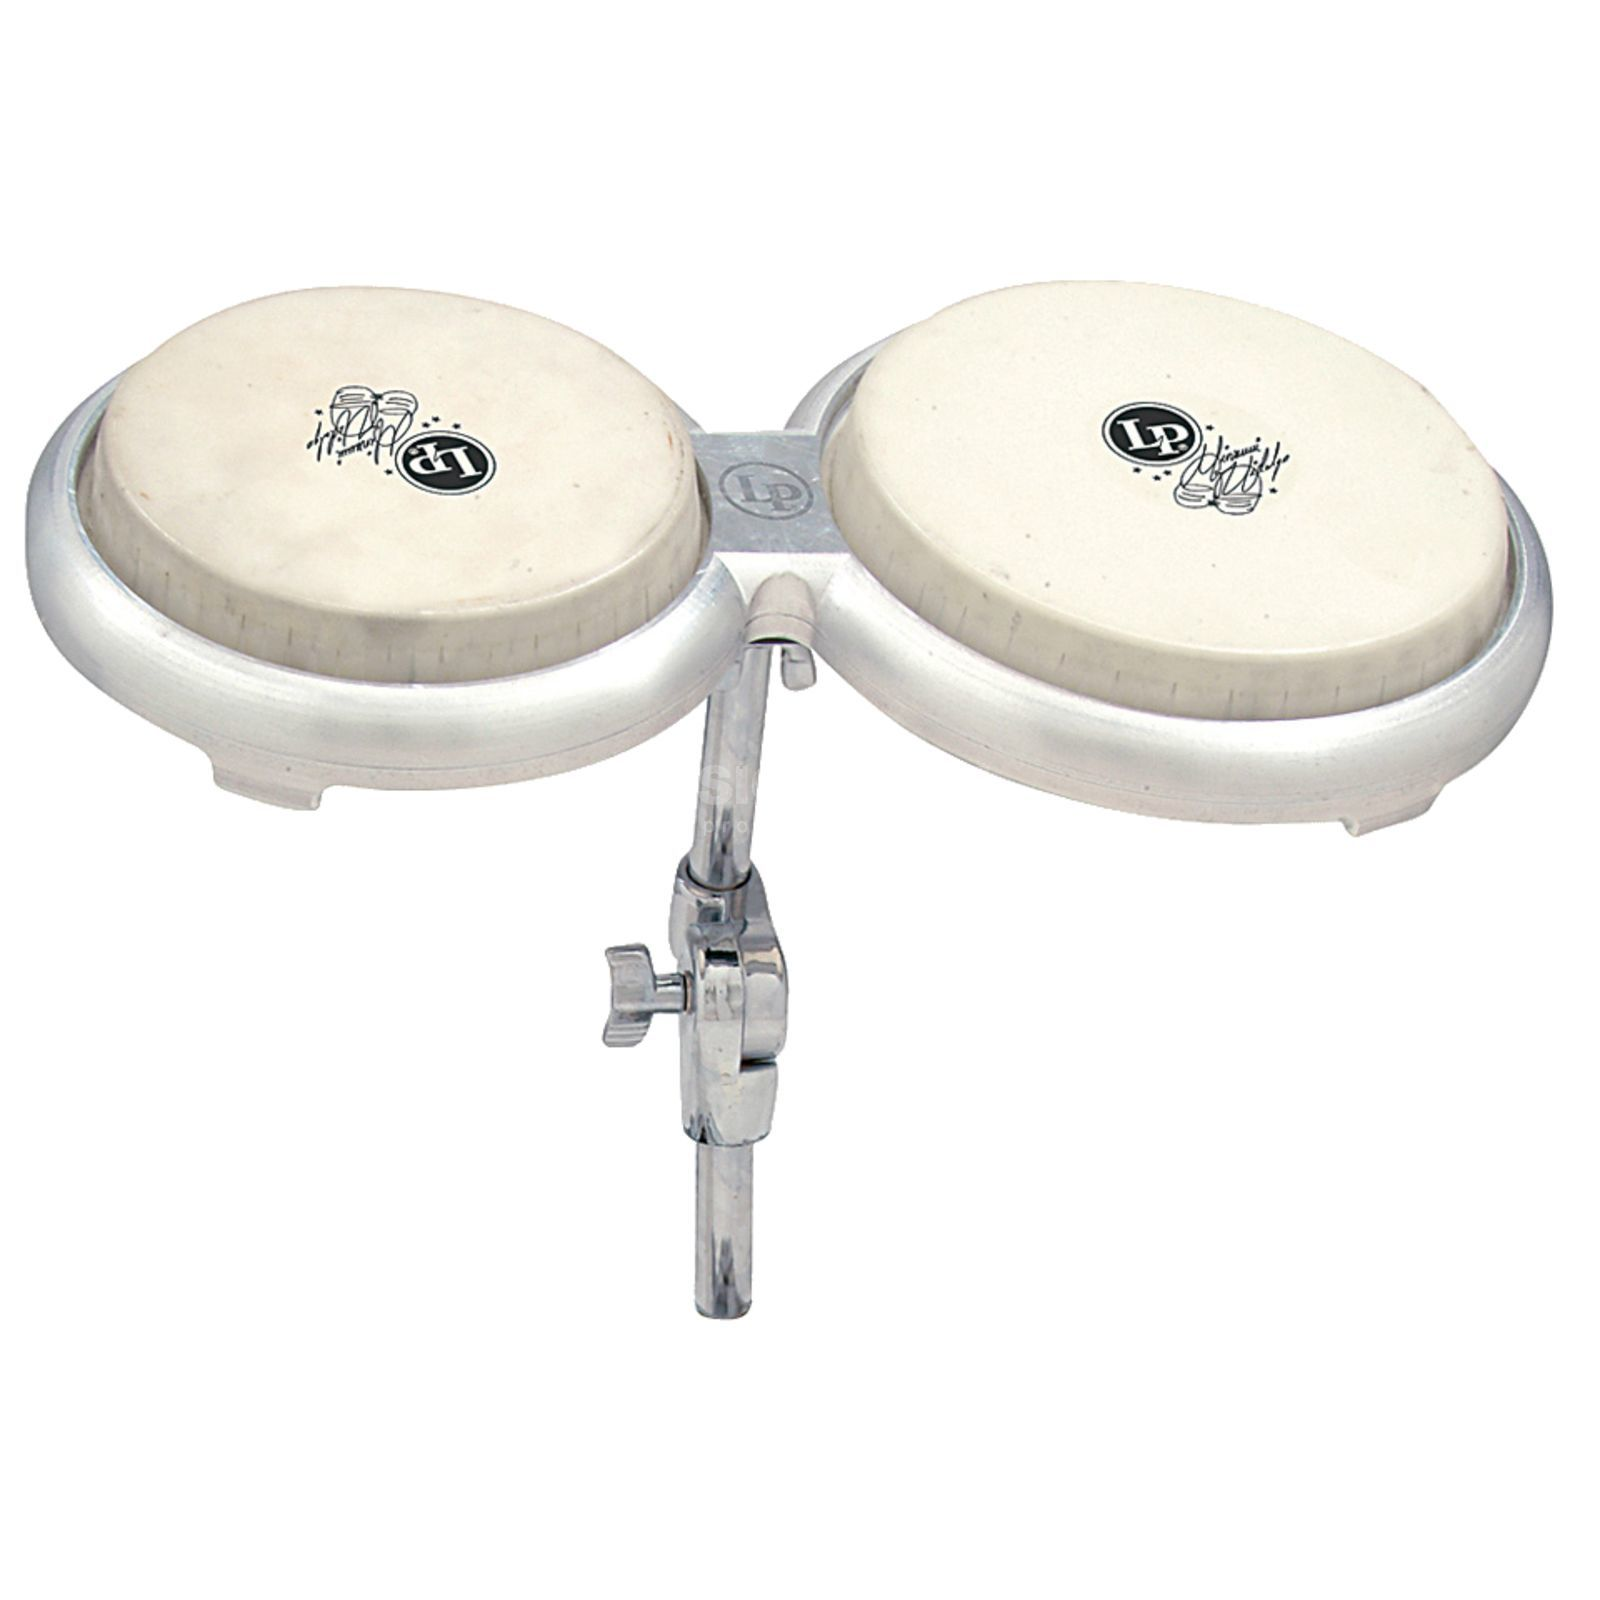 Latin Percussion Compact Bongo LP828 Giovanni Series Product Image